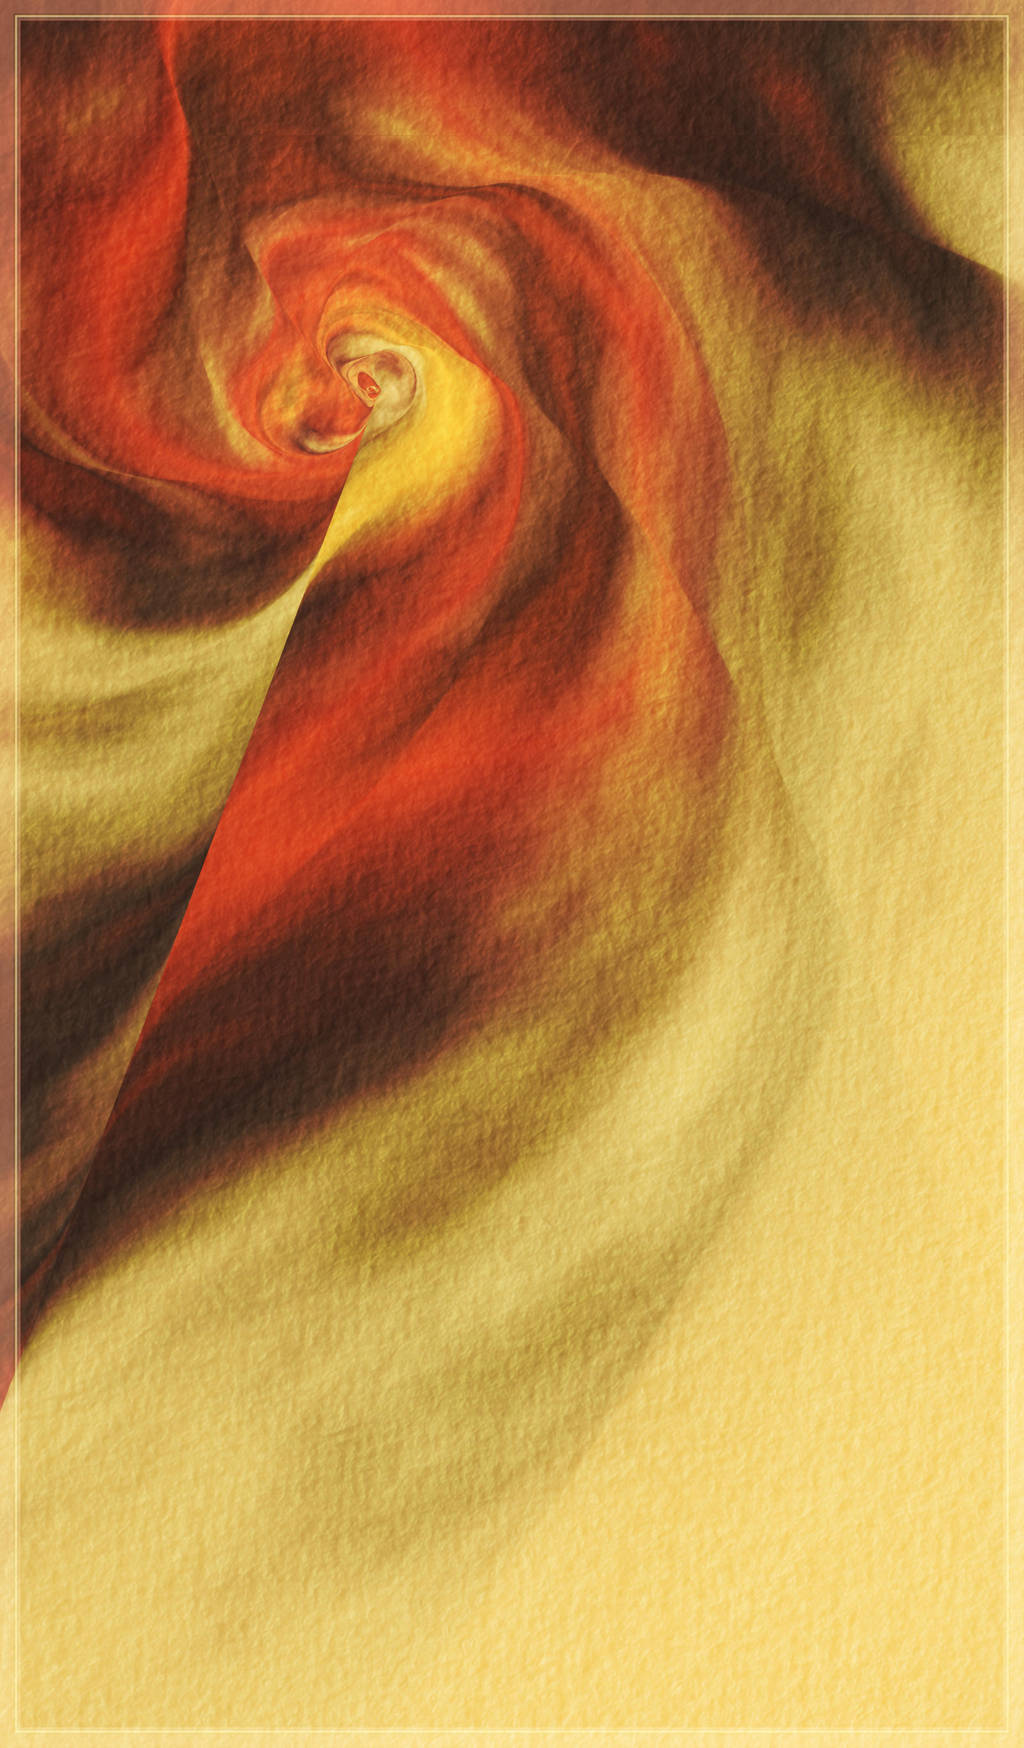 Red fabric - aquarell on paper by adrianamusettidavila